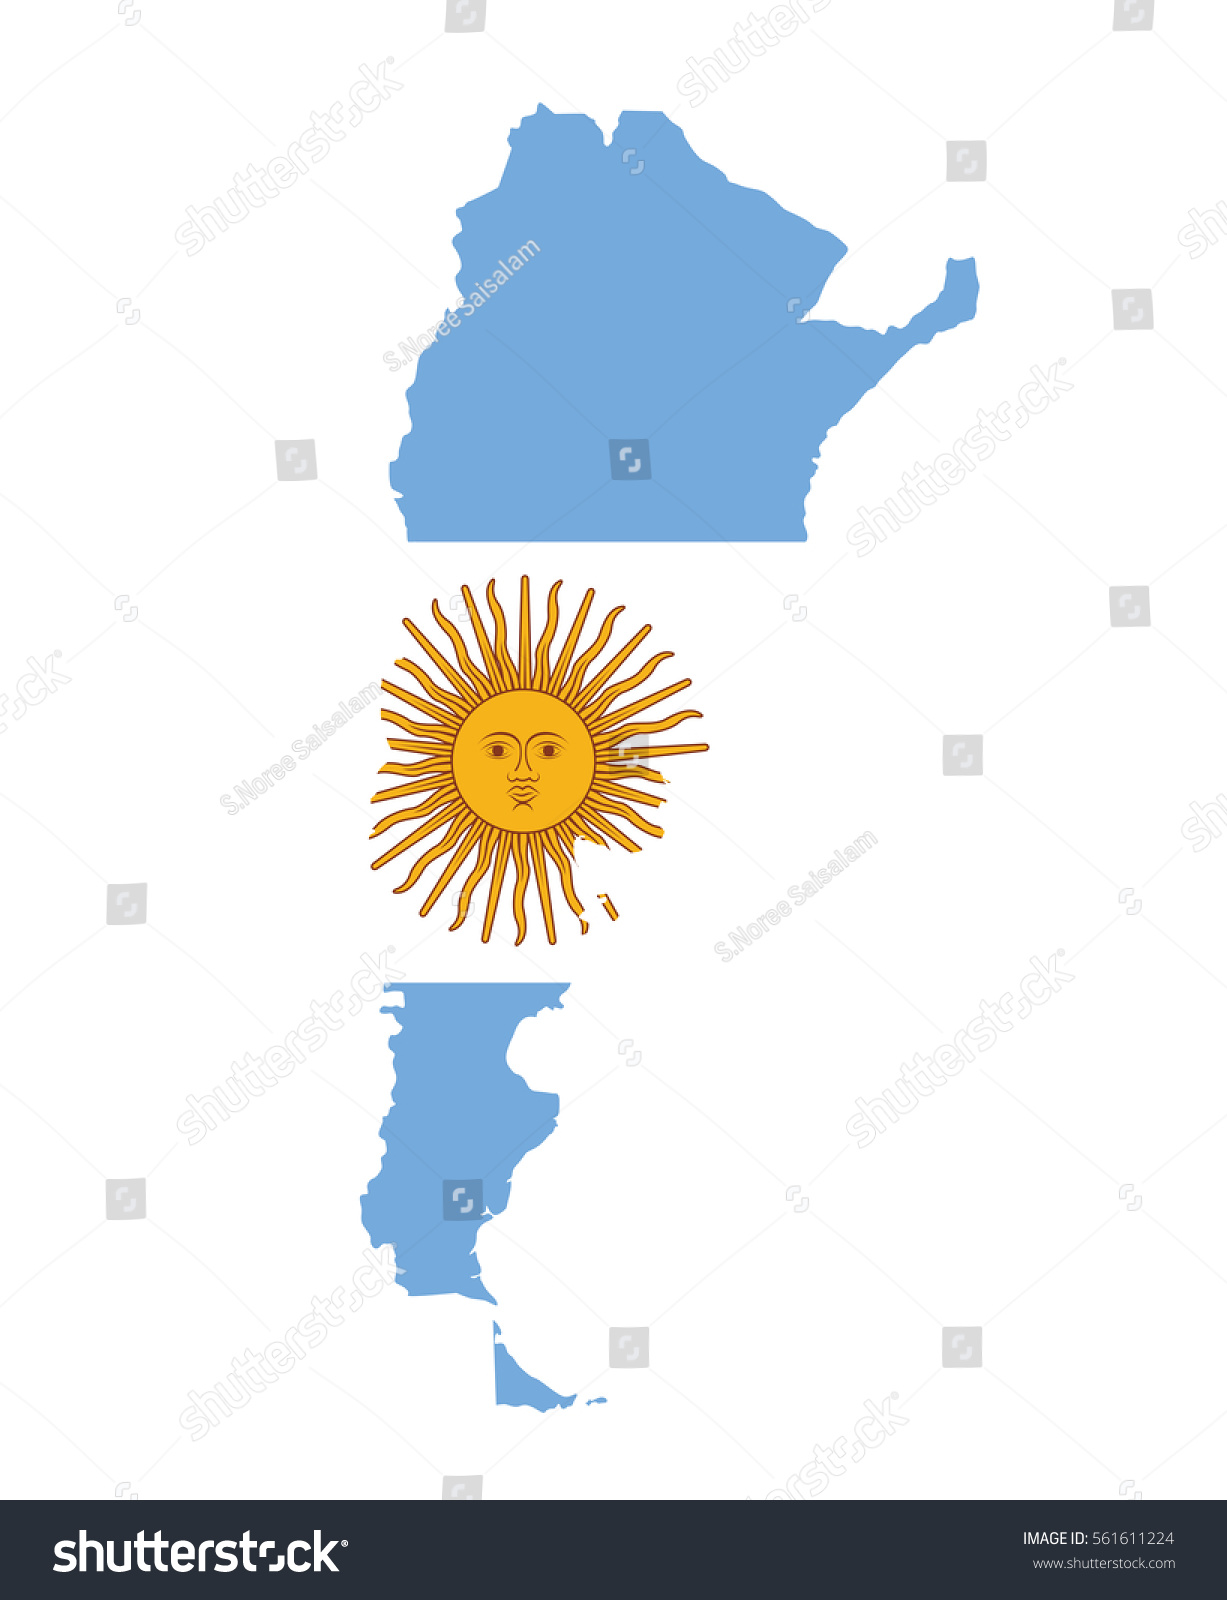 Argentina Map Flag Vector Stock Vector Shutterstock - Argentina map vector free